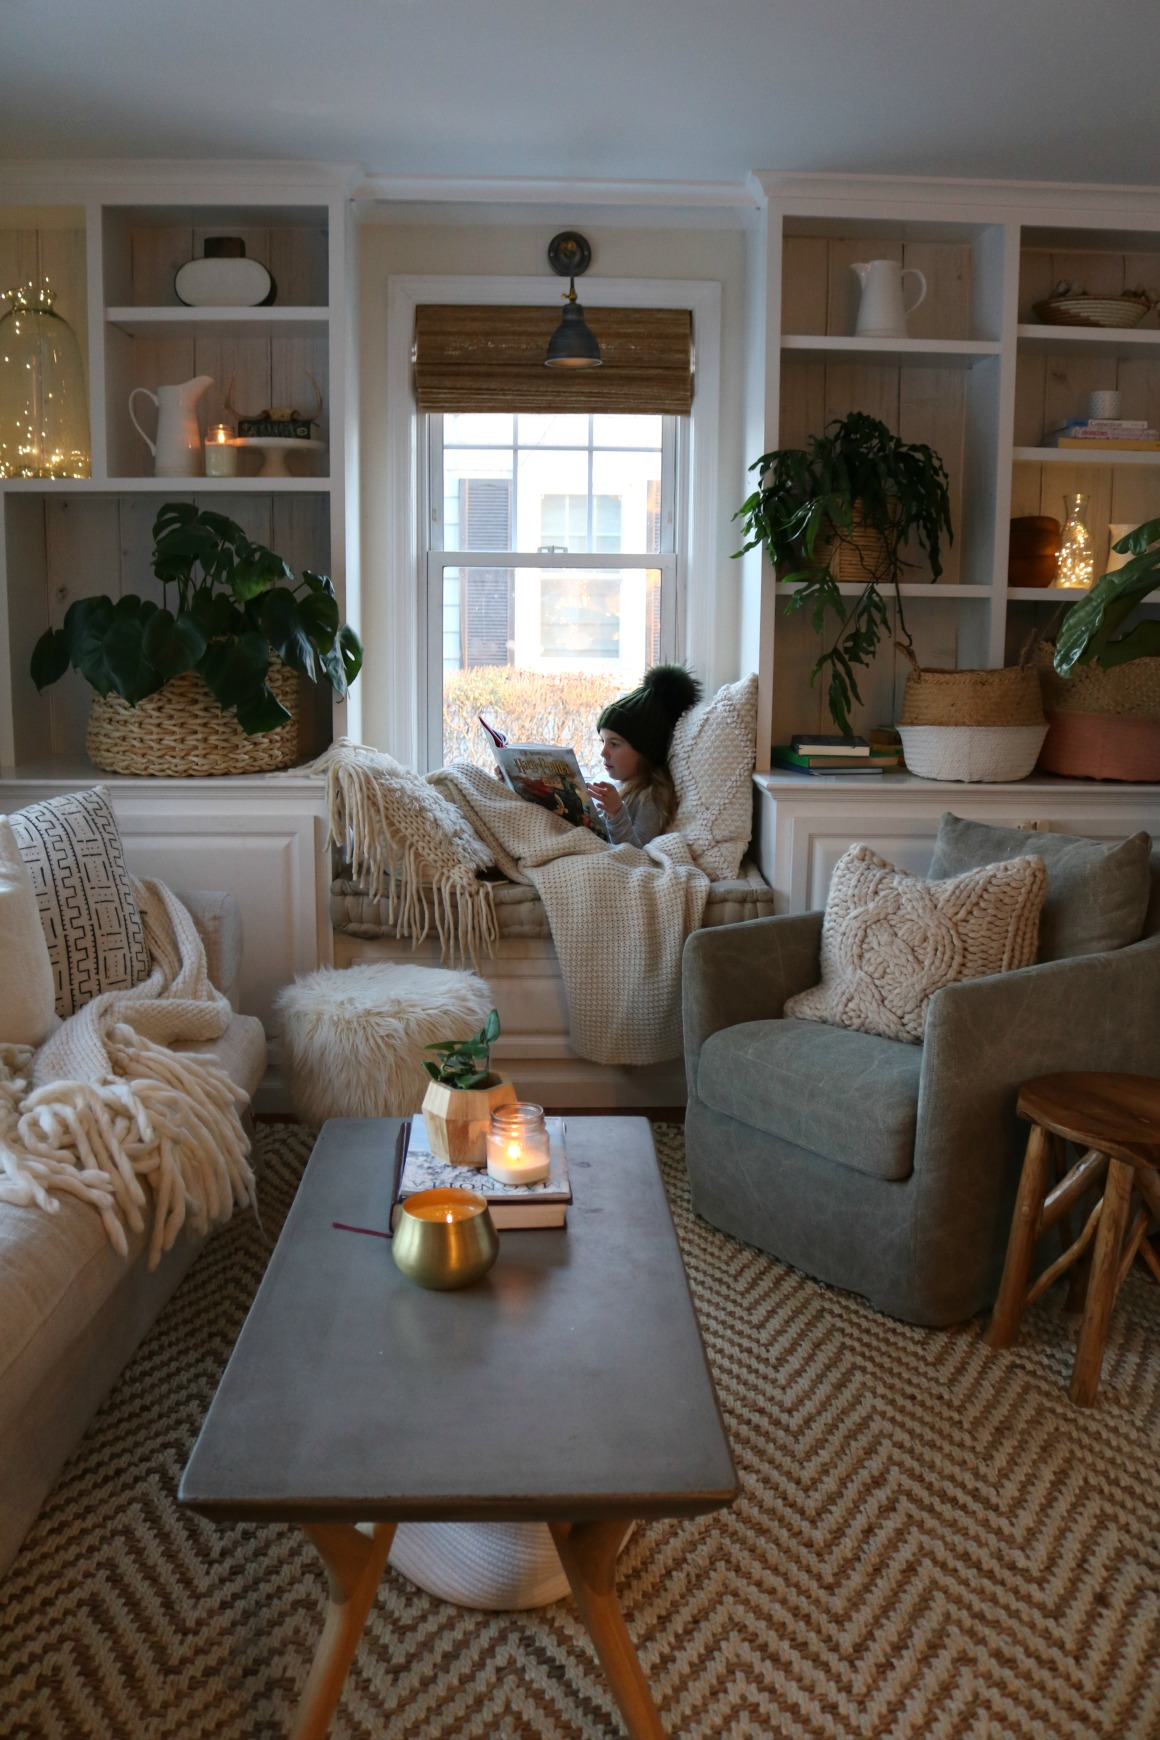 How to Have a Cozy Home- 4 Simple Tips!